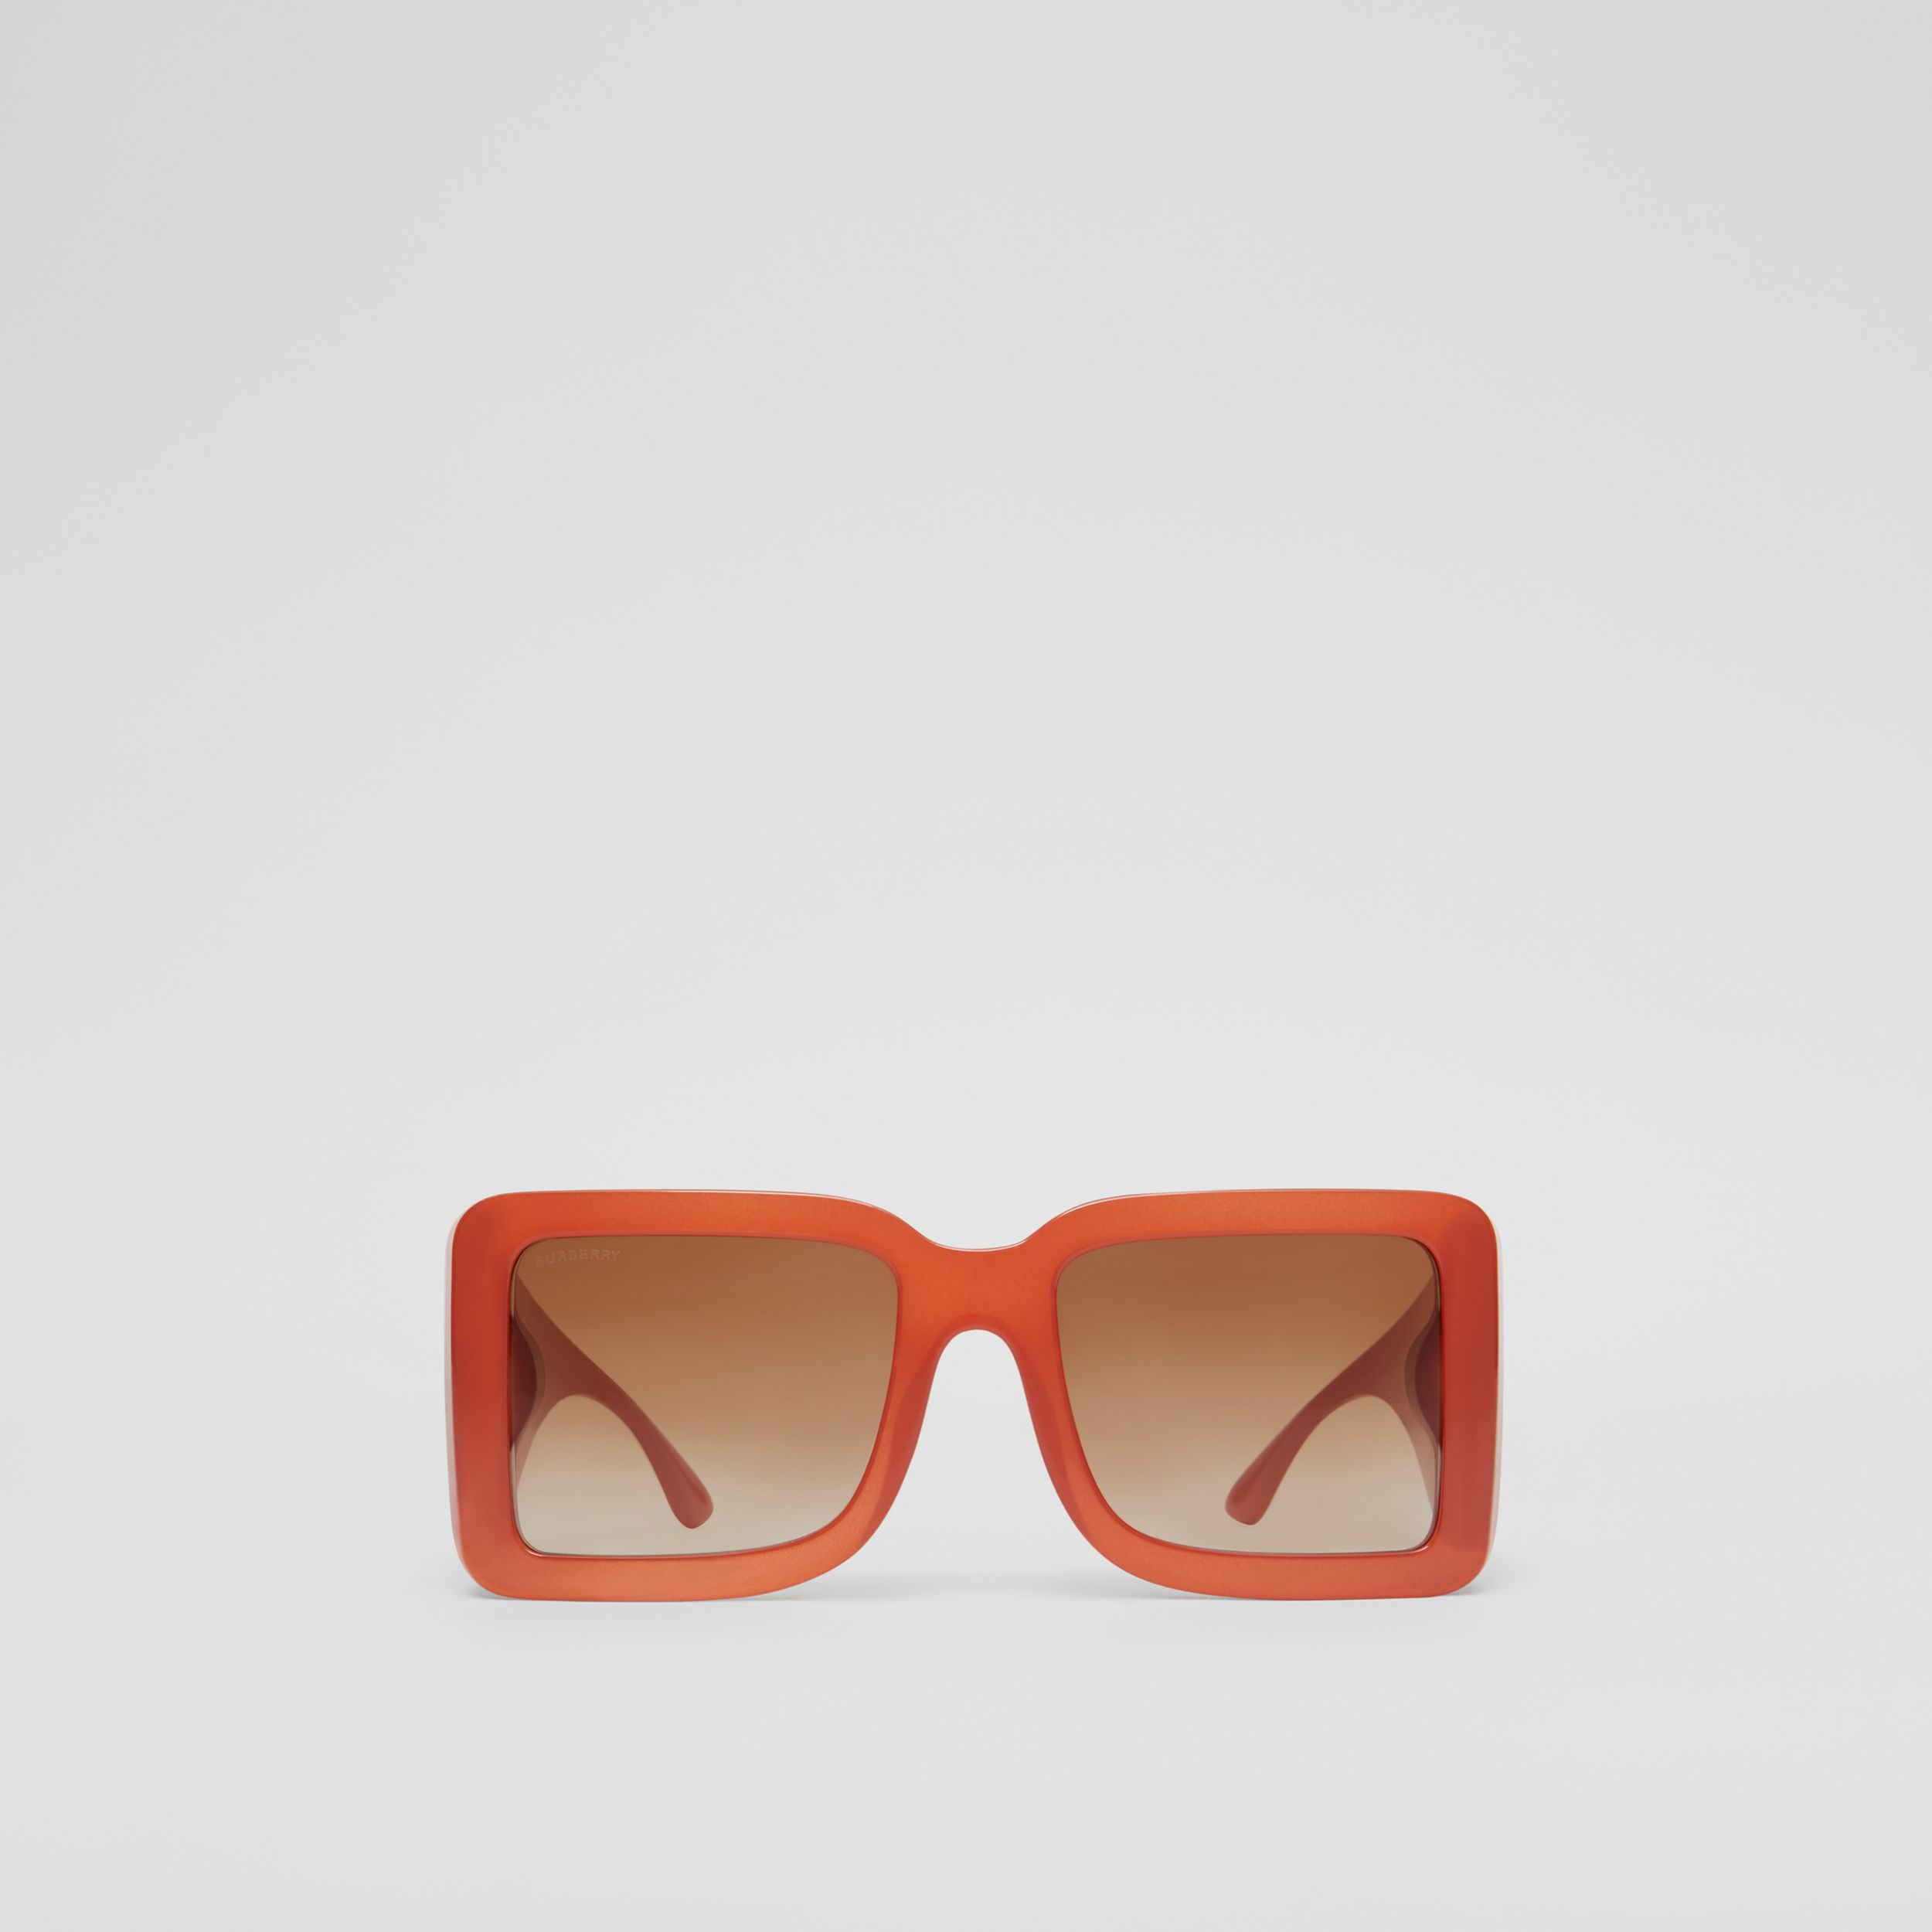 B Motif Square Frame Sunglasses in Orange | Burberry Canada - 1